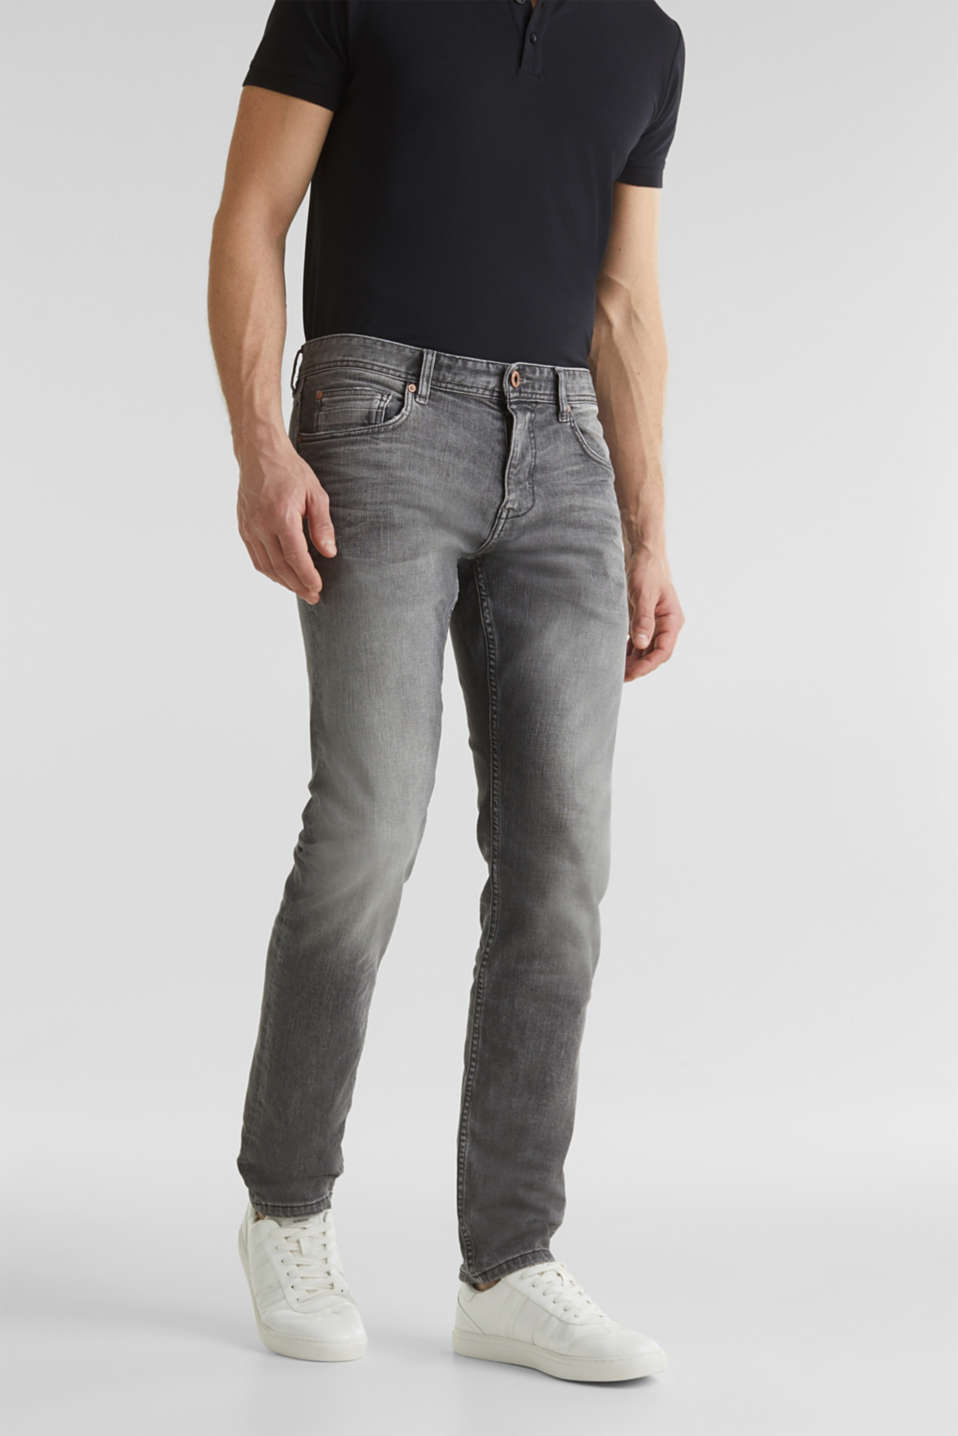 Esprit - Premium jeans with whiskering